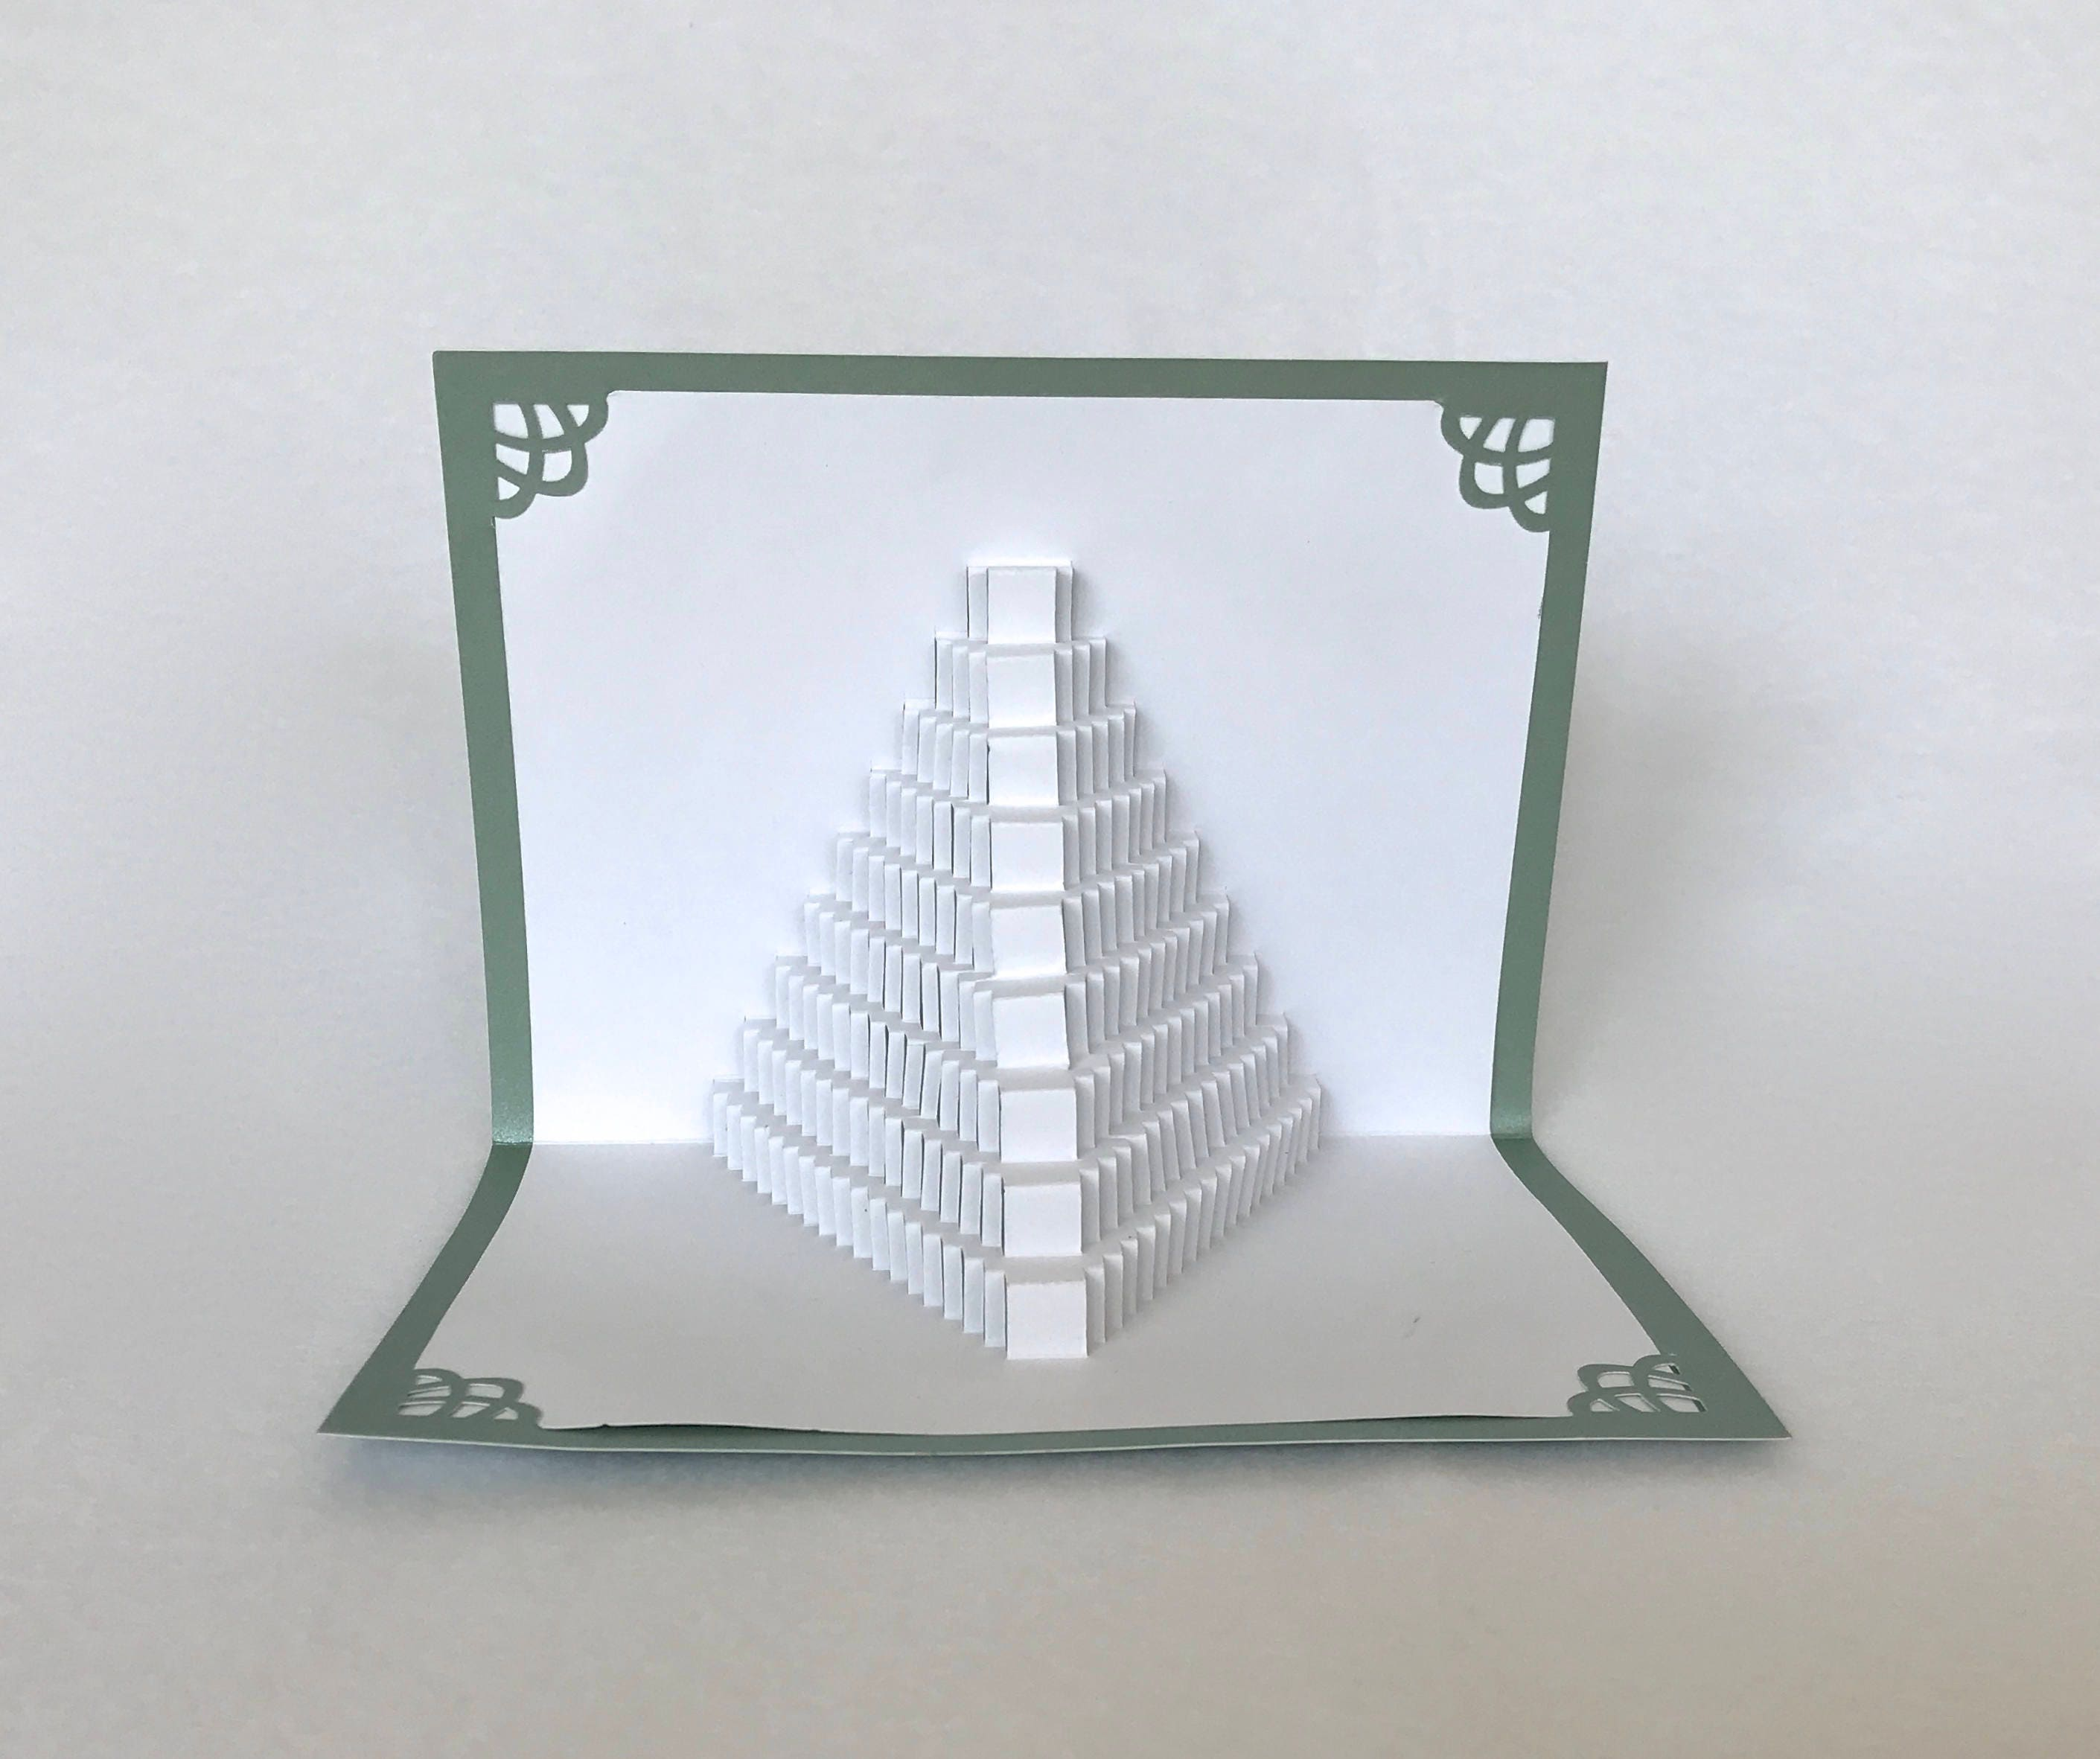 3D Pop Up STAIRS 2 LOVE Shaped like a Pyramid Origamic